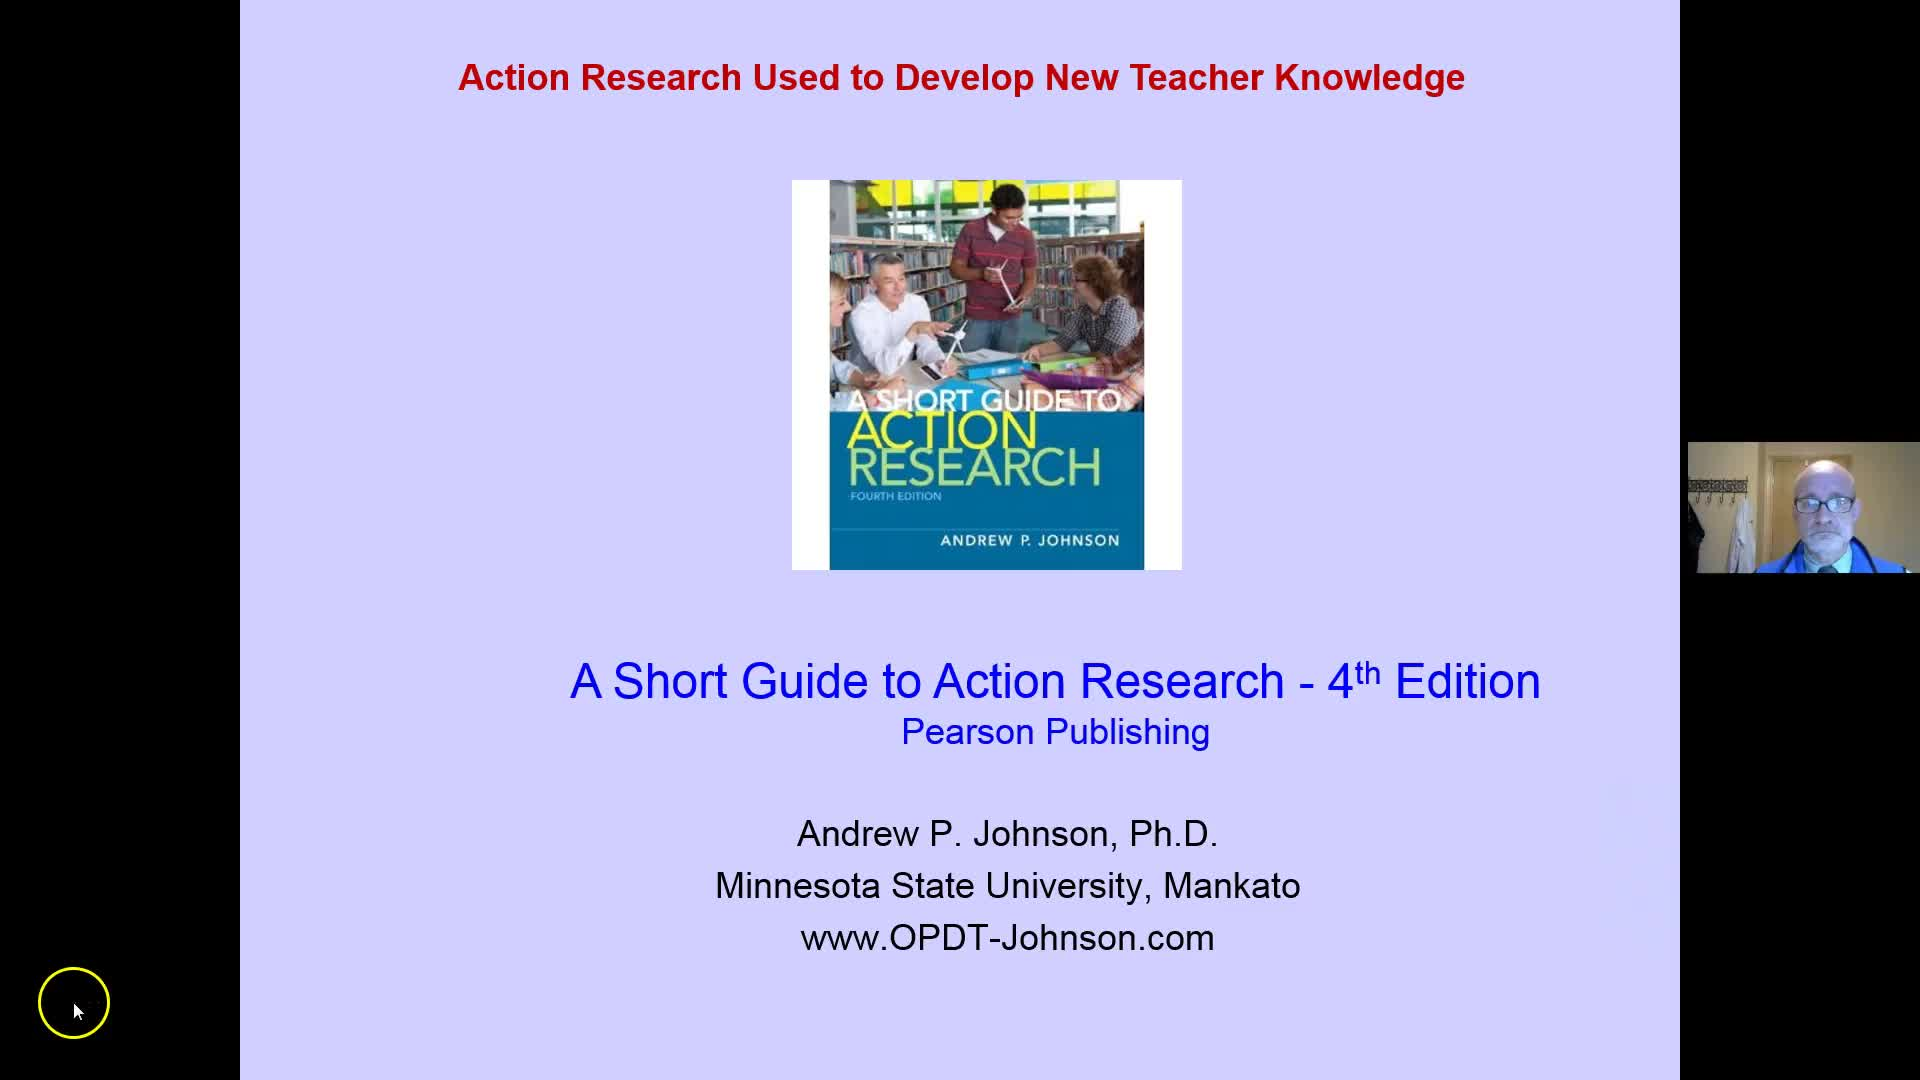 USING ACTION RESEARCH TO DEVELOP TEACHER KNOWLEDGE